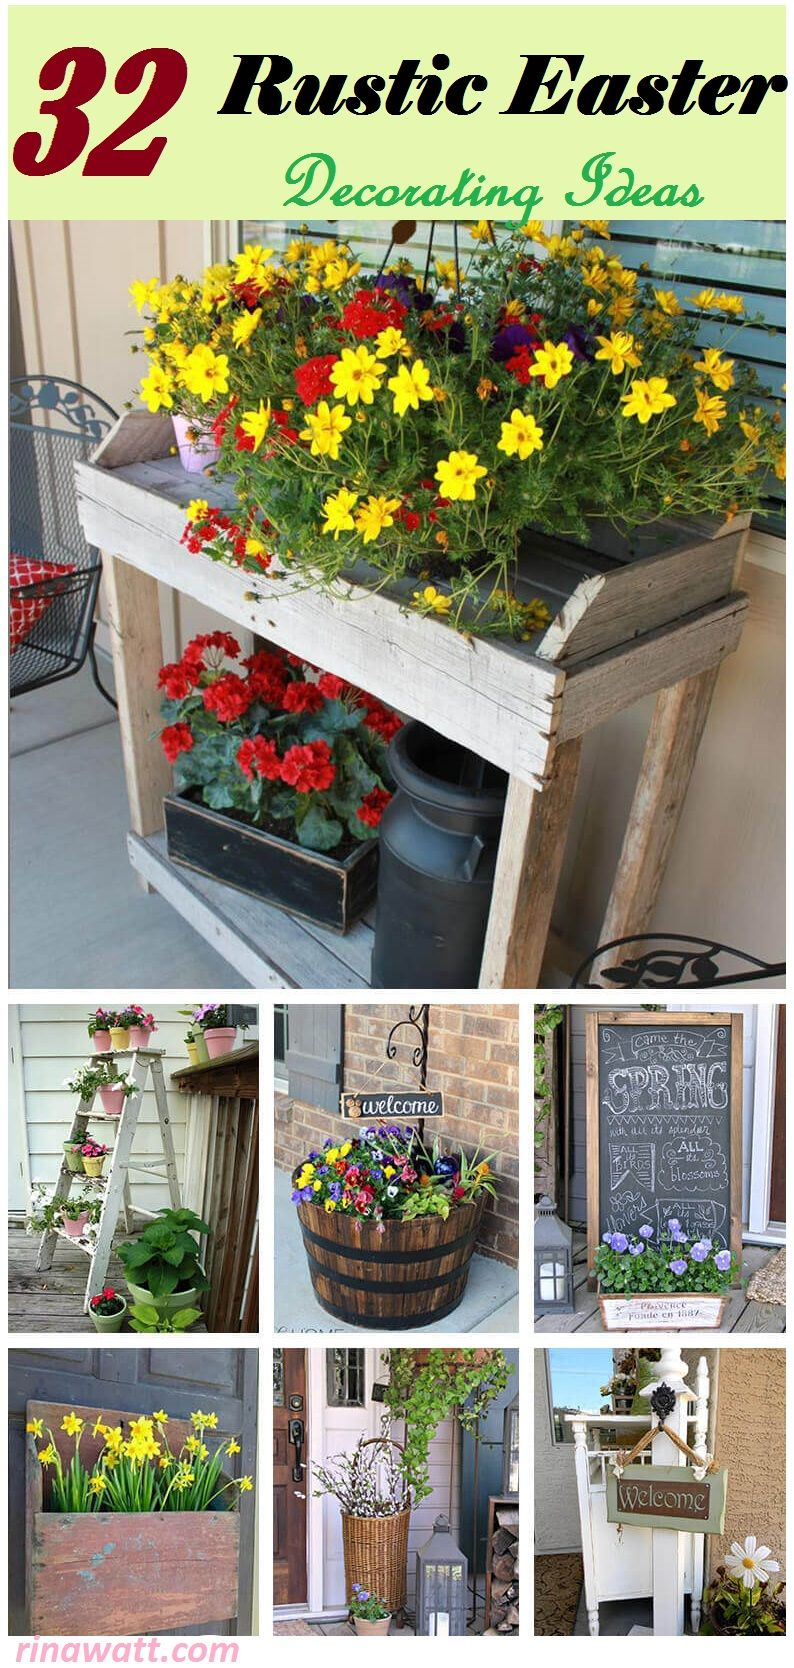 Nested Baskets With Flowers And Decorative Eggs Source Confessionsofaplateaddict Blo 2 Burlap Lined Wood Box Centerpiece Nests